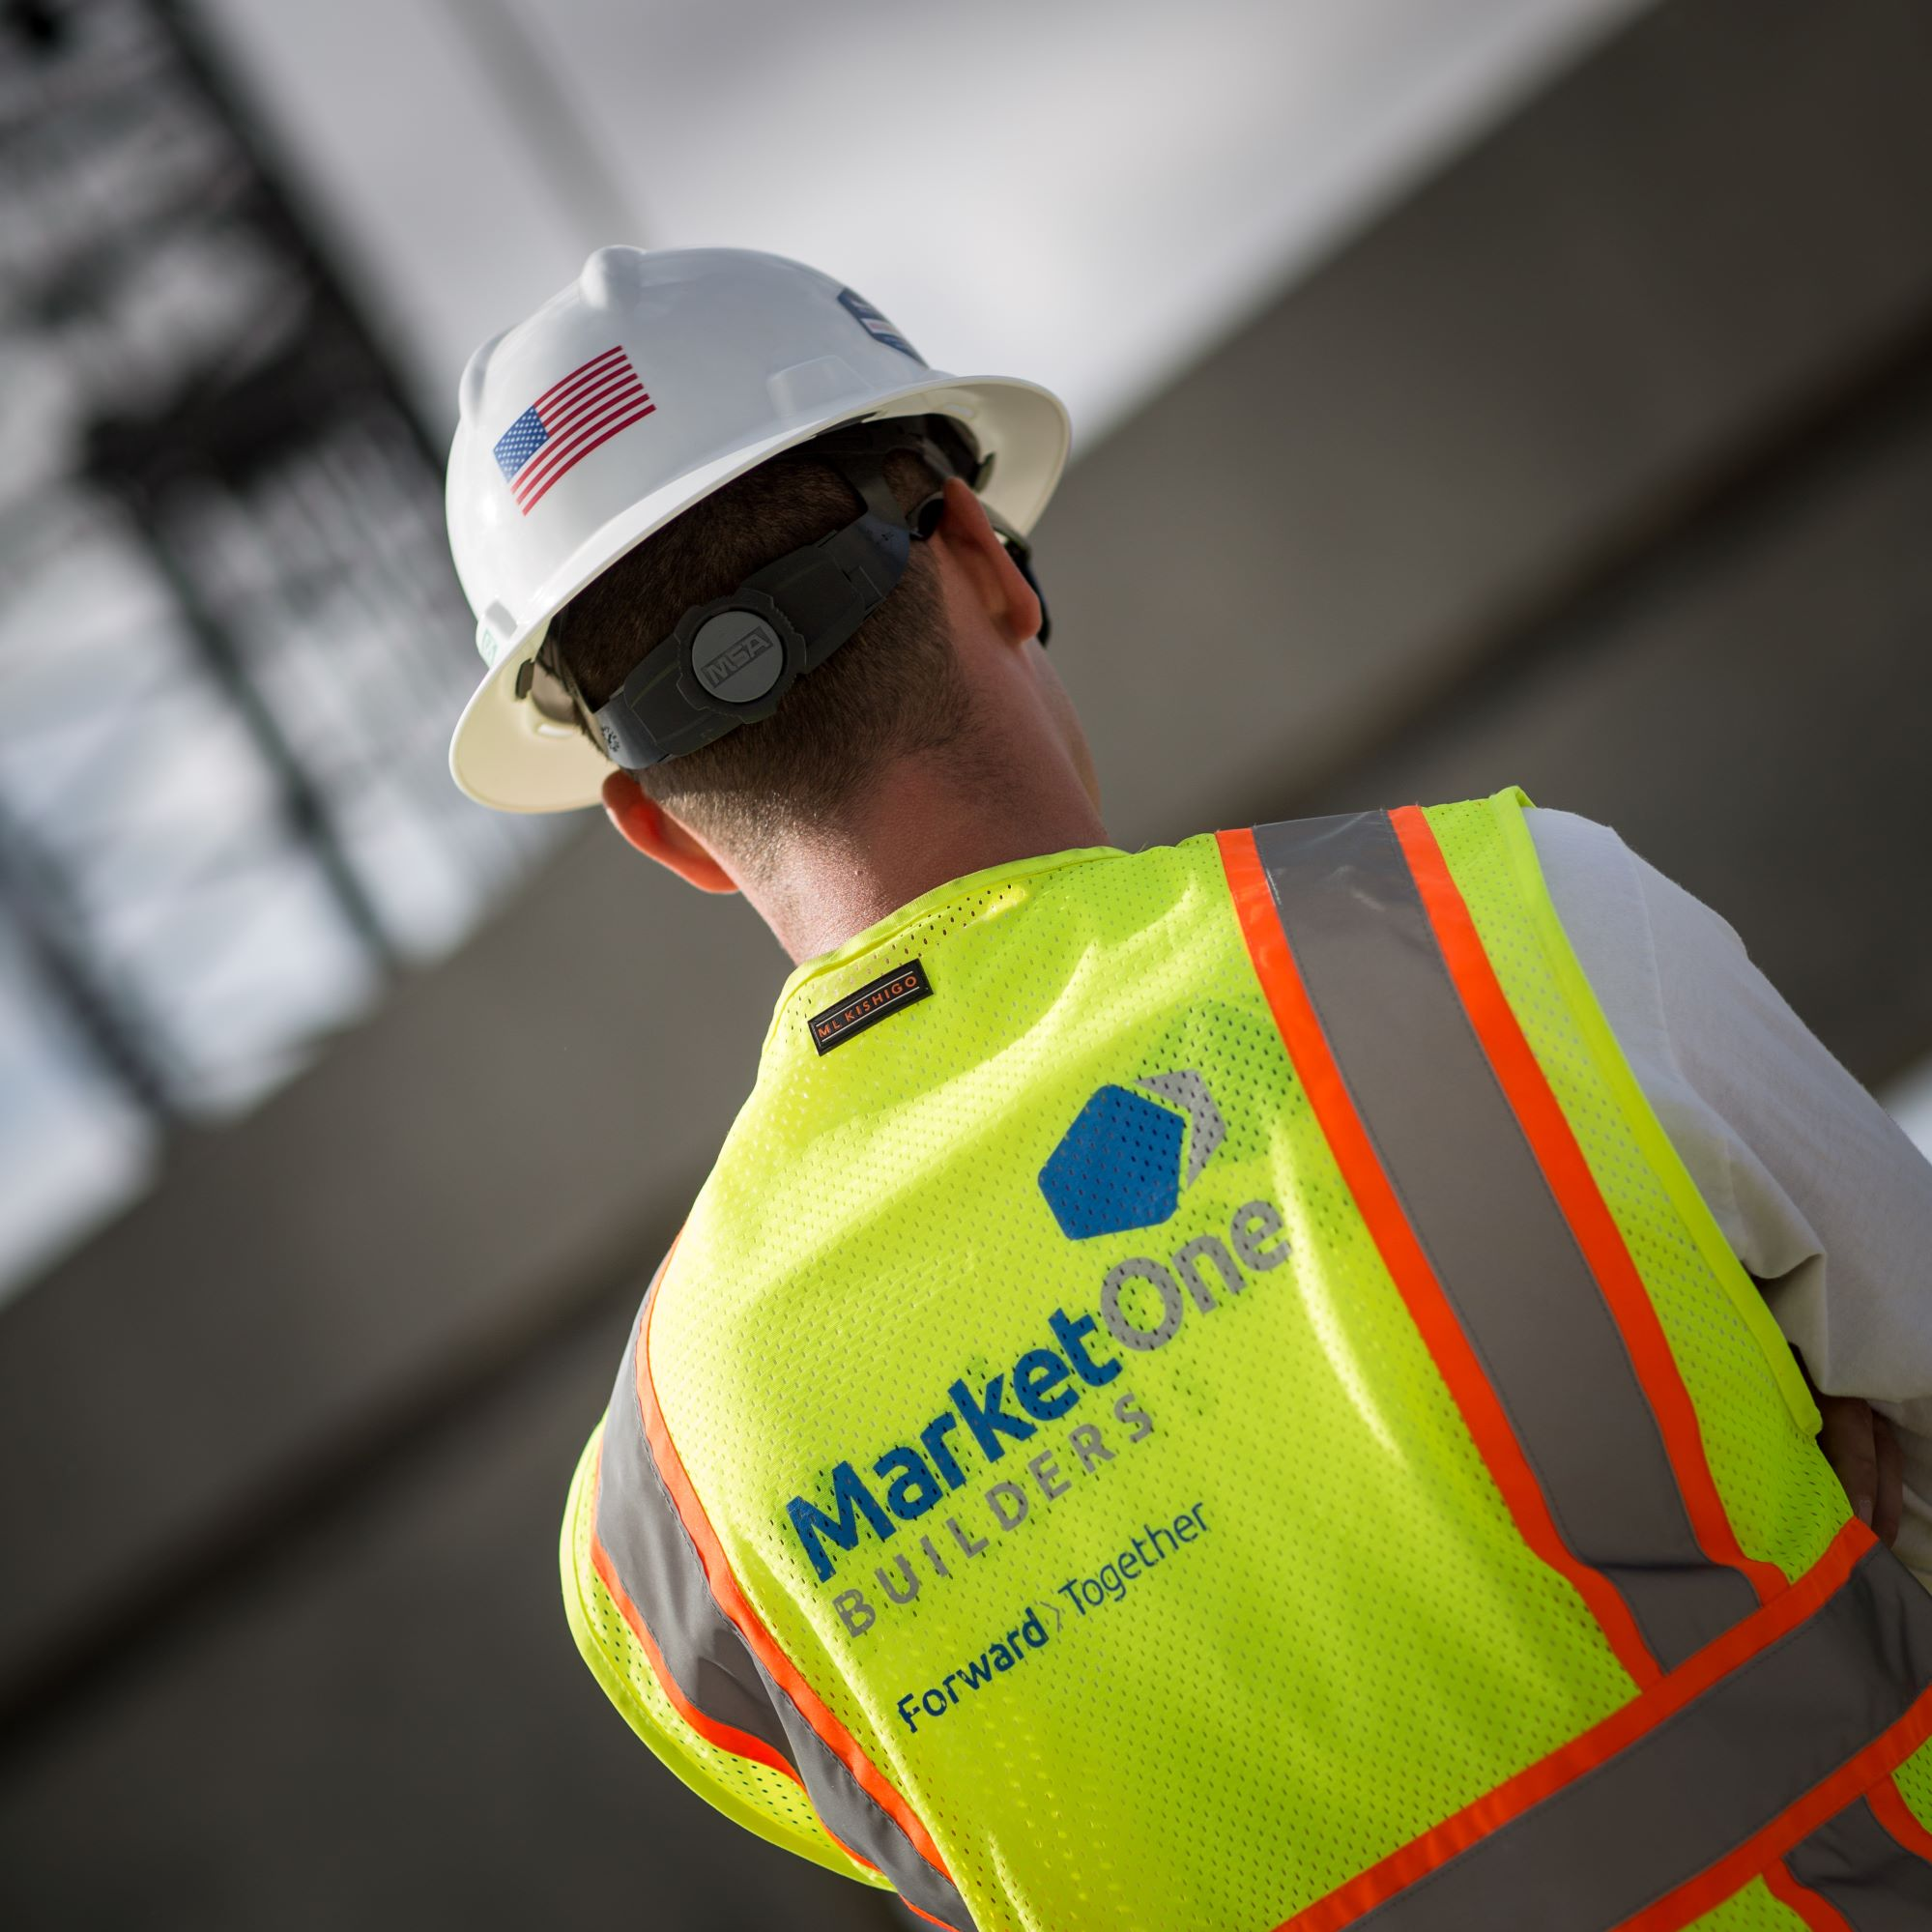 MarketOne construction worker with back to camera